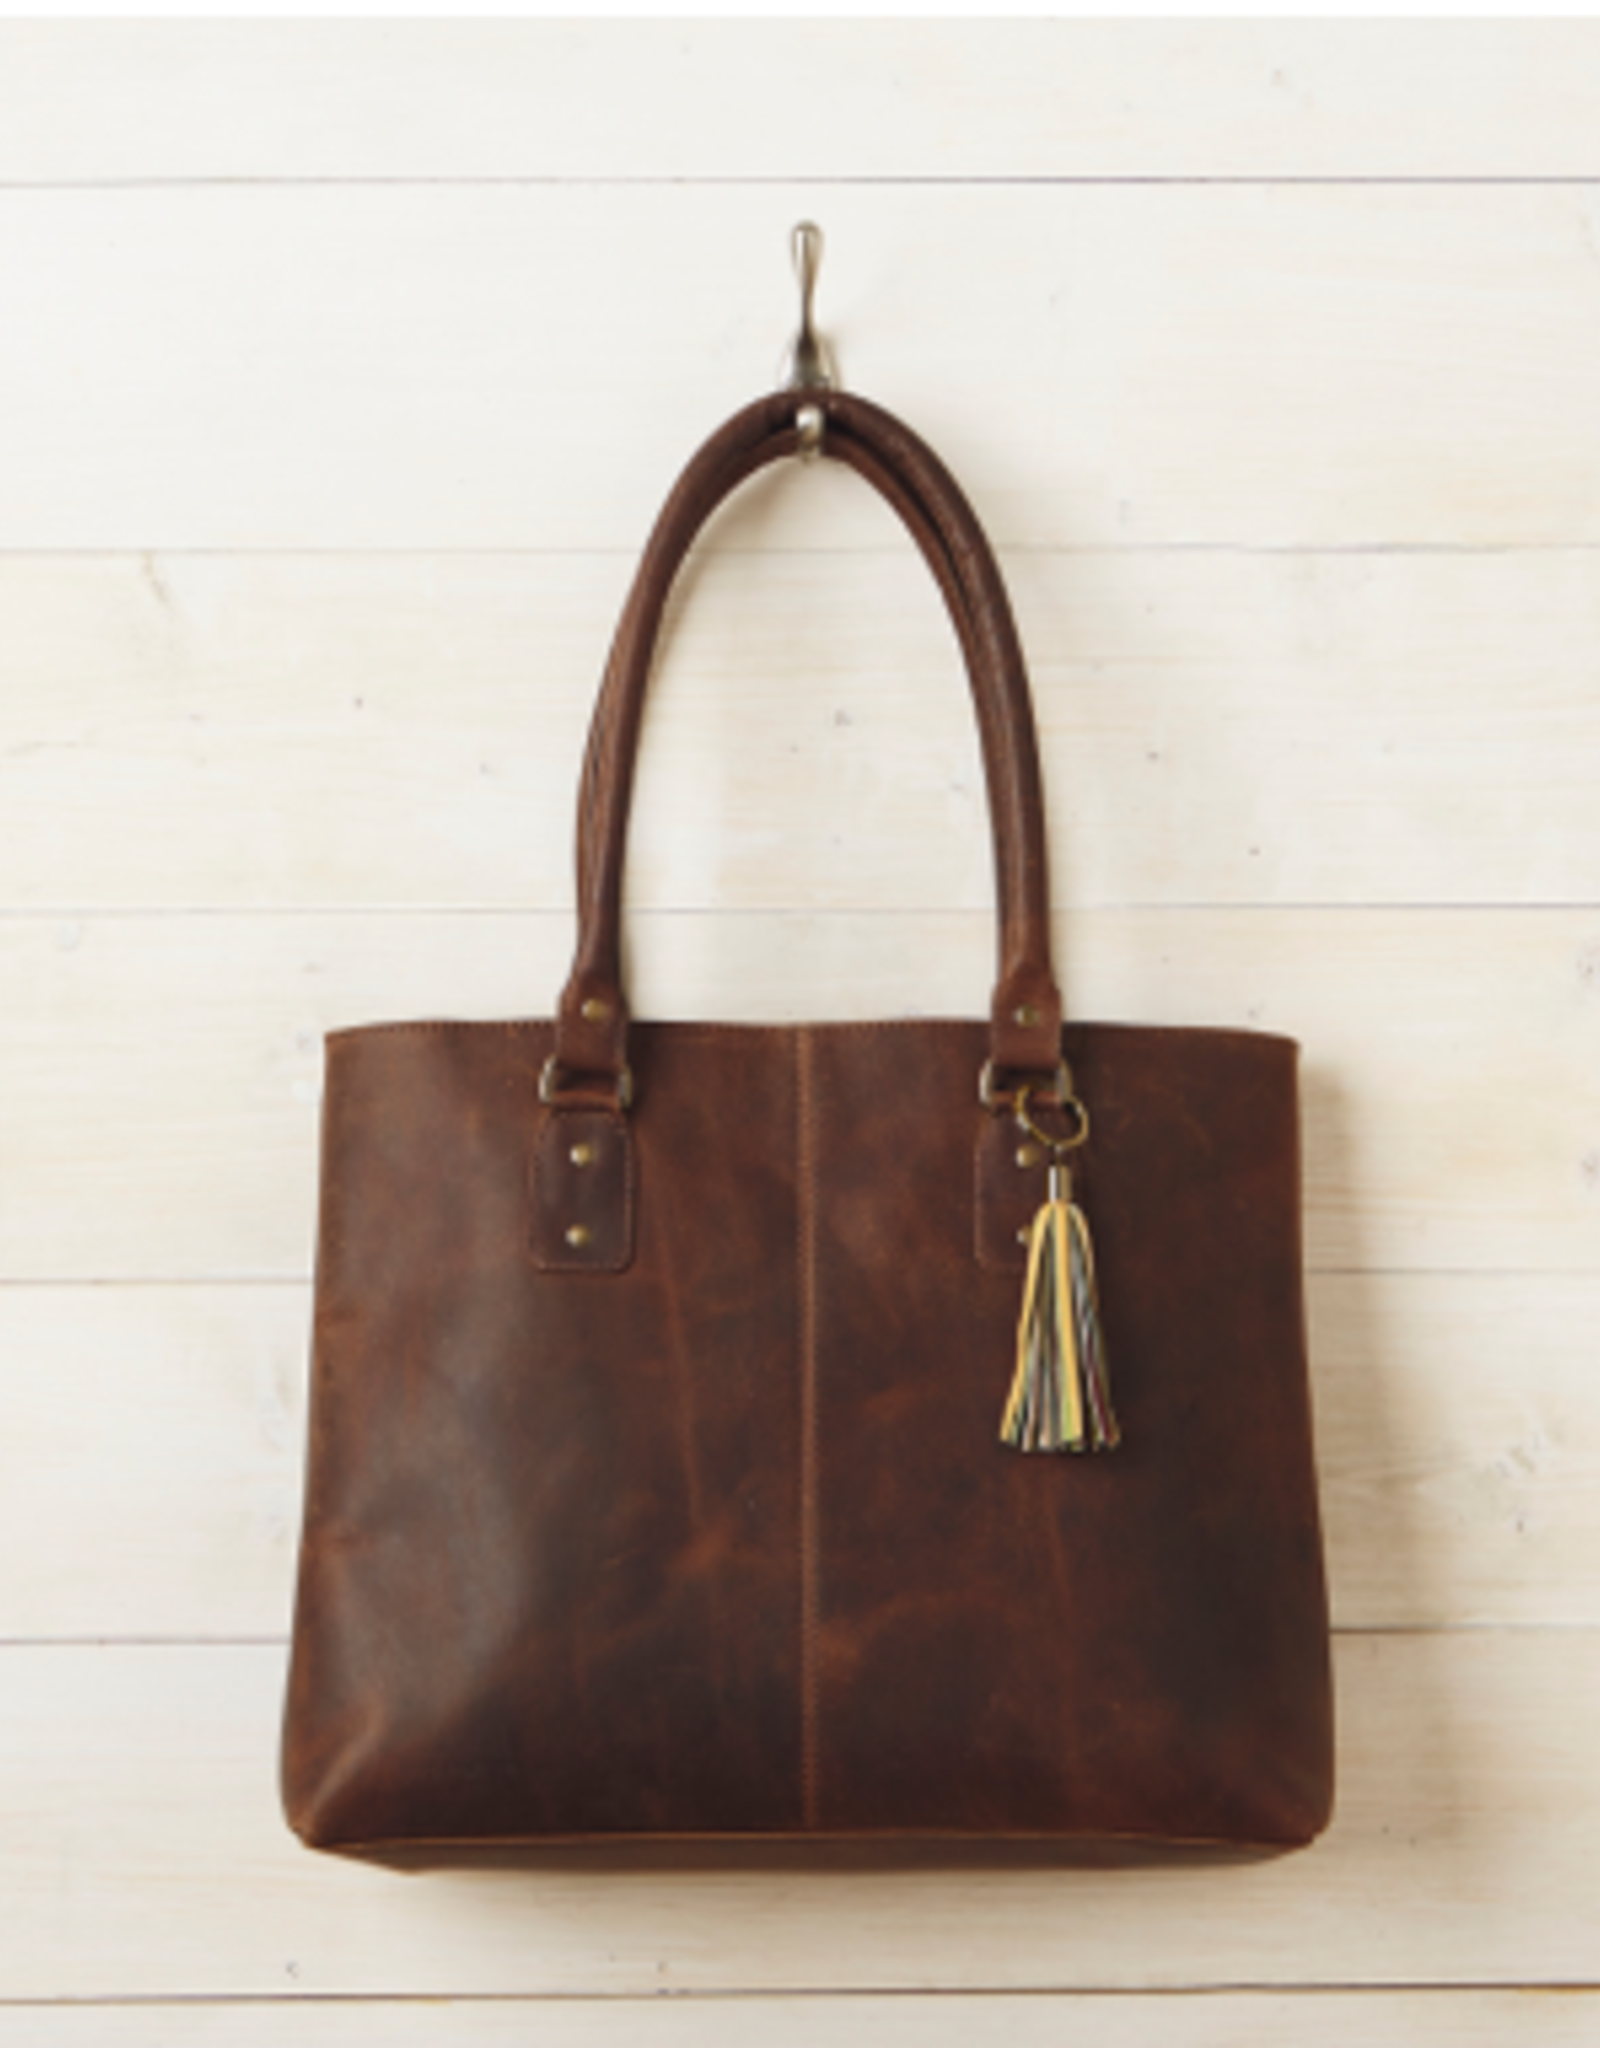 Rustic Leather Bag, India